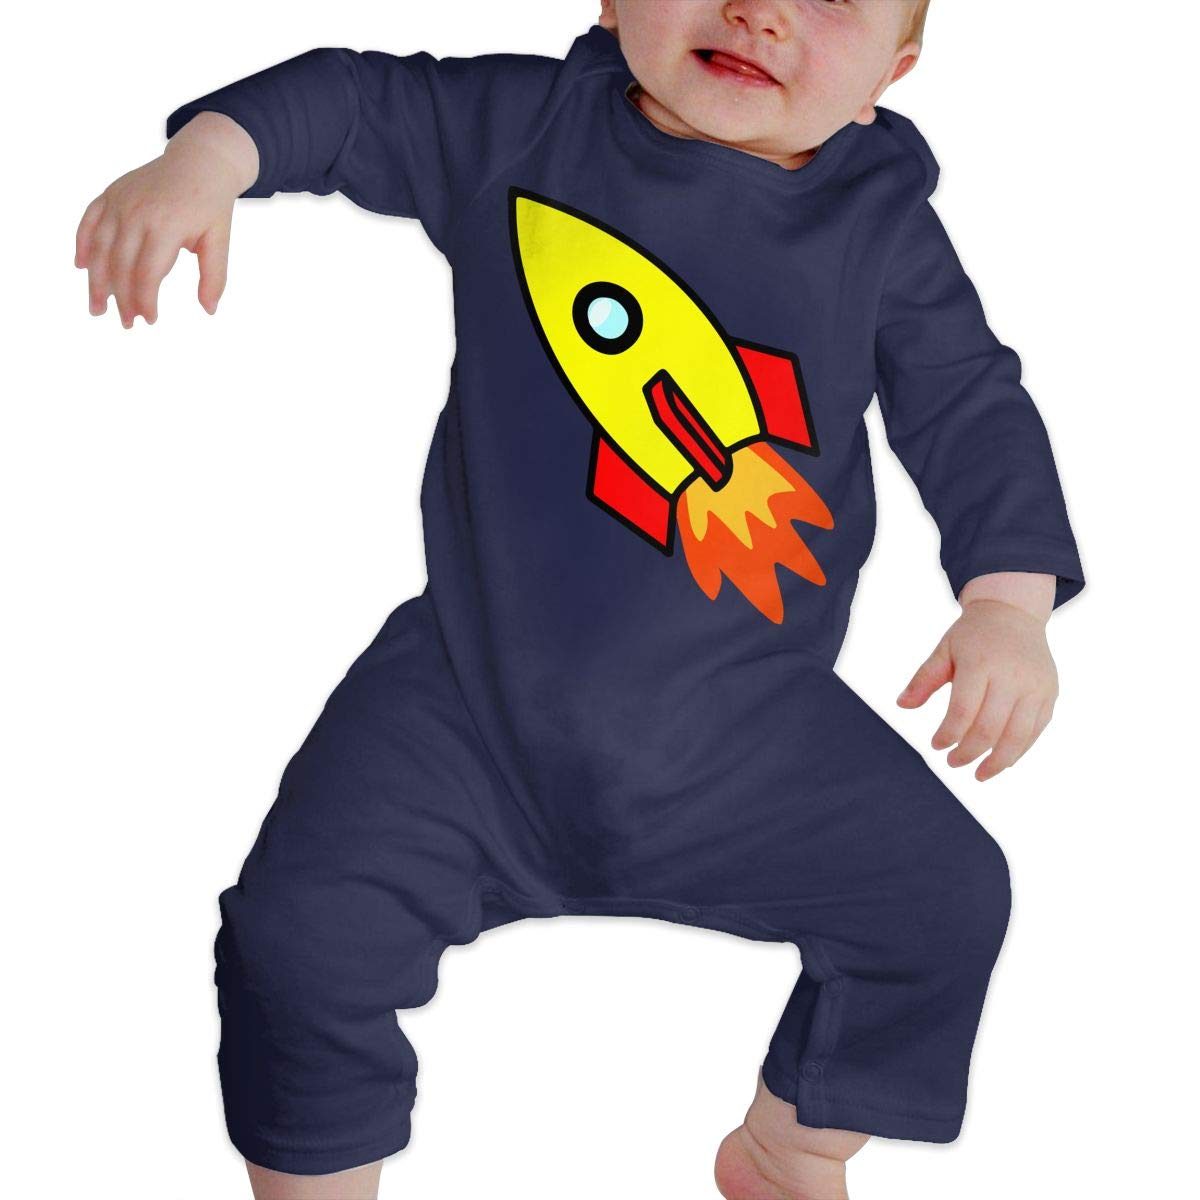 UGFGF-S3 Red Yellow Rocket Spaceship Newborn Baby Long Sleeve Romper Jumpsuit Jumpsuit